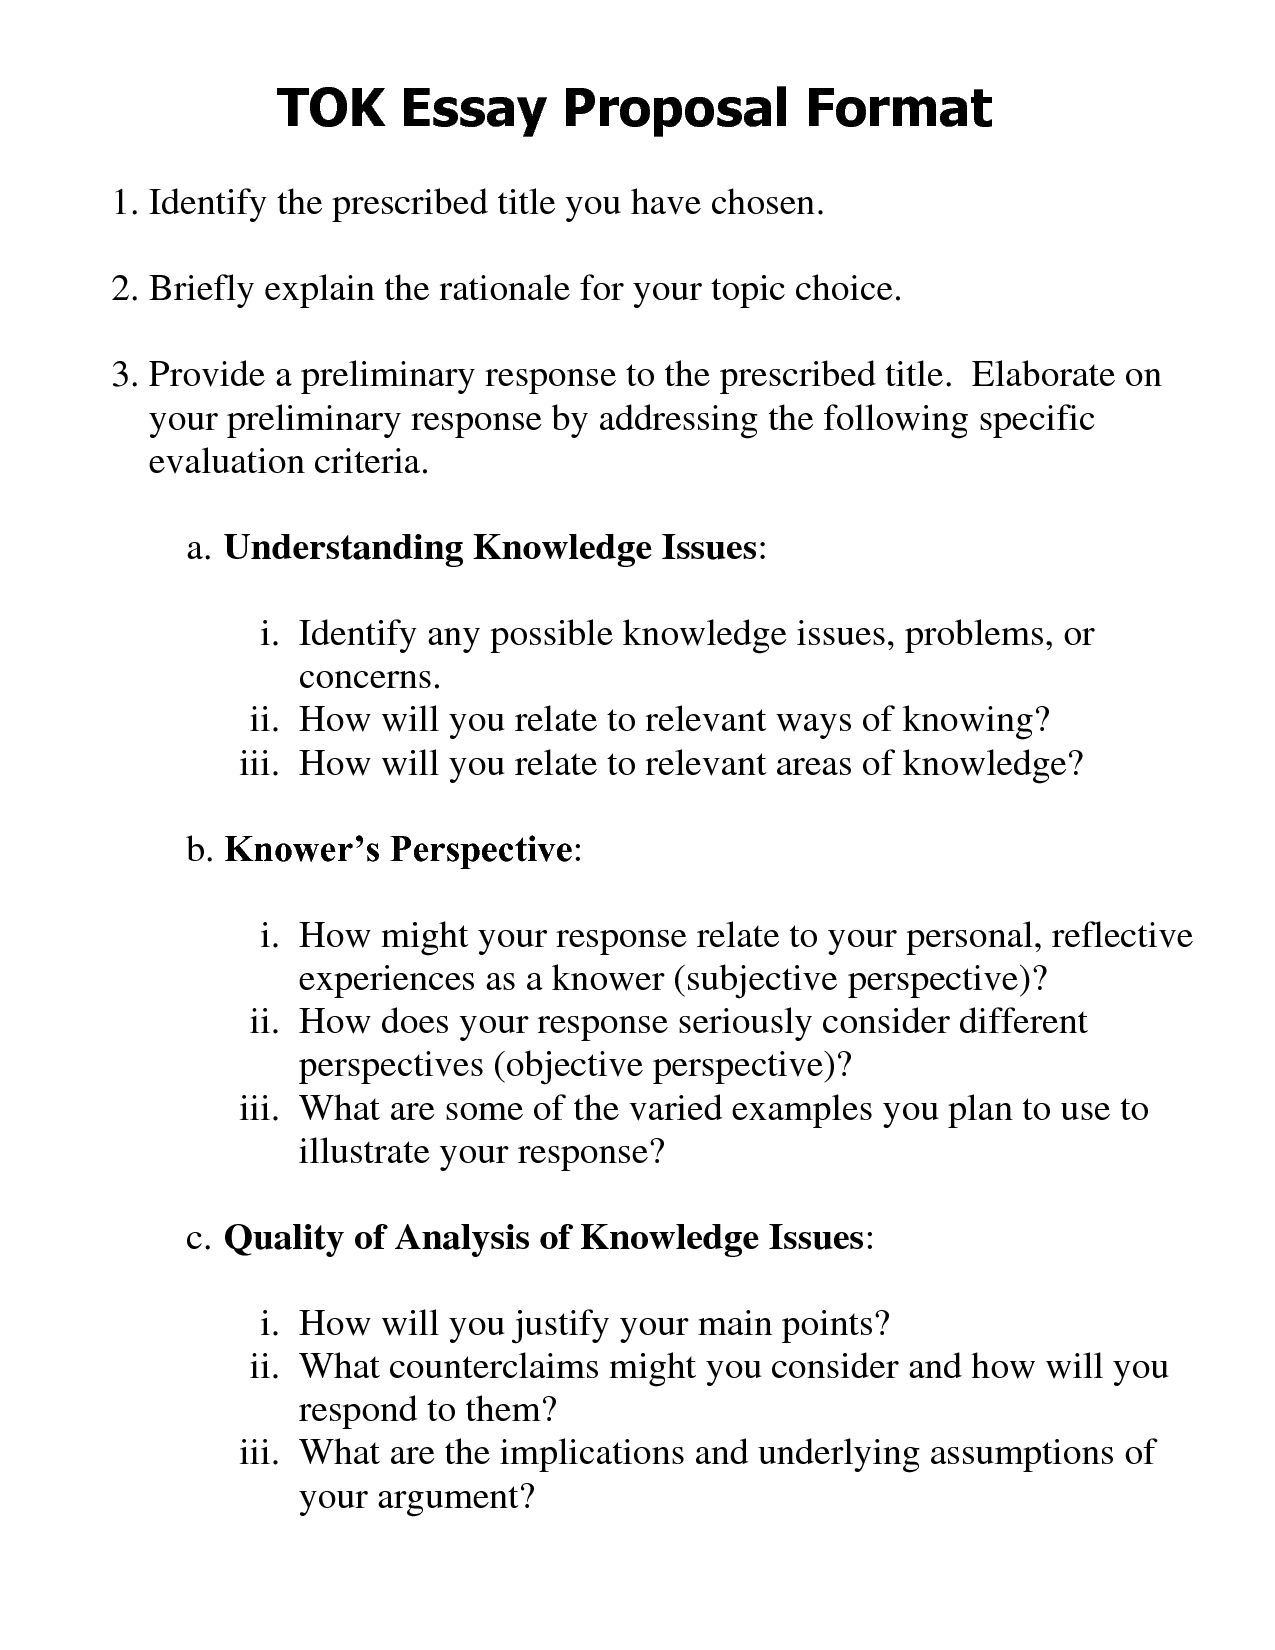 Essay On Photosynthesis A List Of Interesting Healthcare Topics For Your Essay Political Science Essays also Sample Essay For High School Students Fine Writing  Writing  Whitcoulls Proposal Essay Topic List  How To Write A Proposal Essay Outline